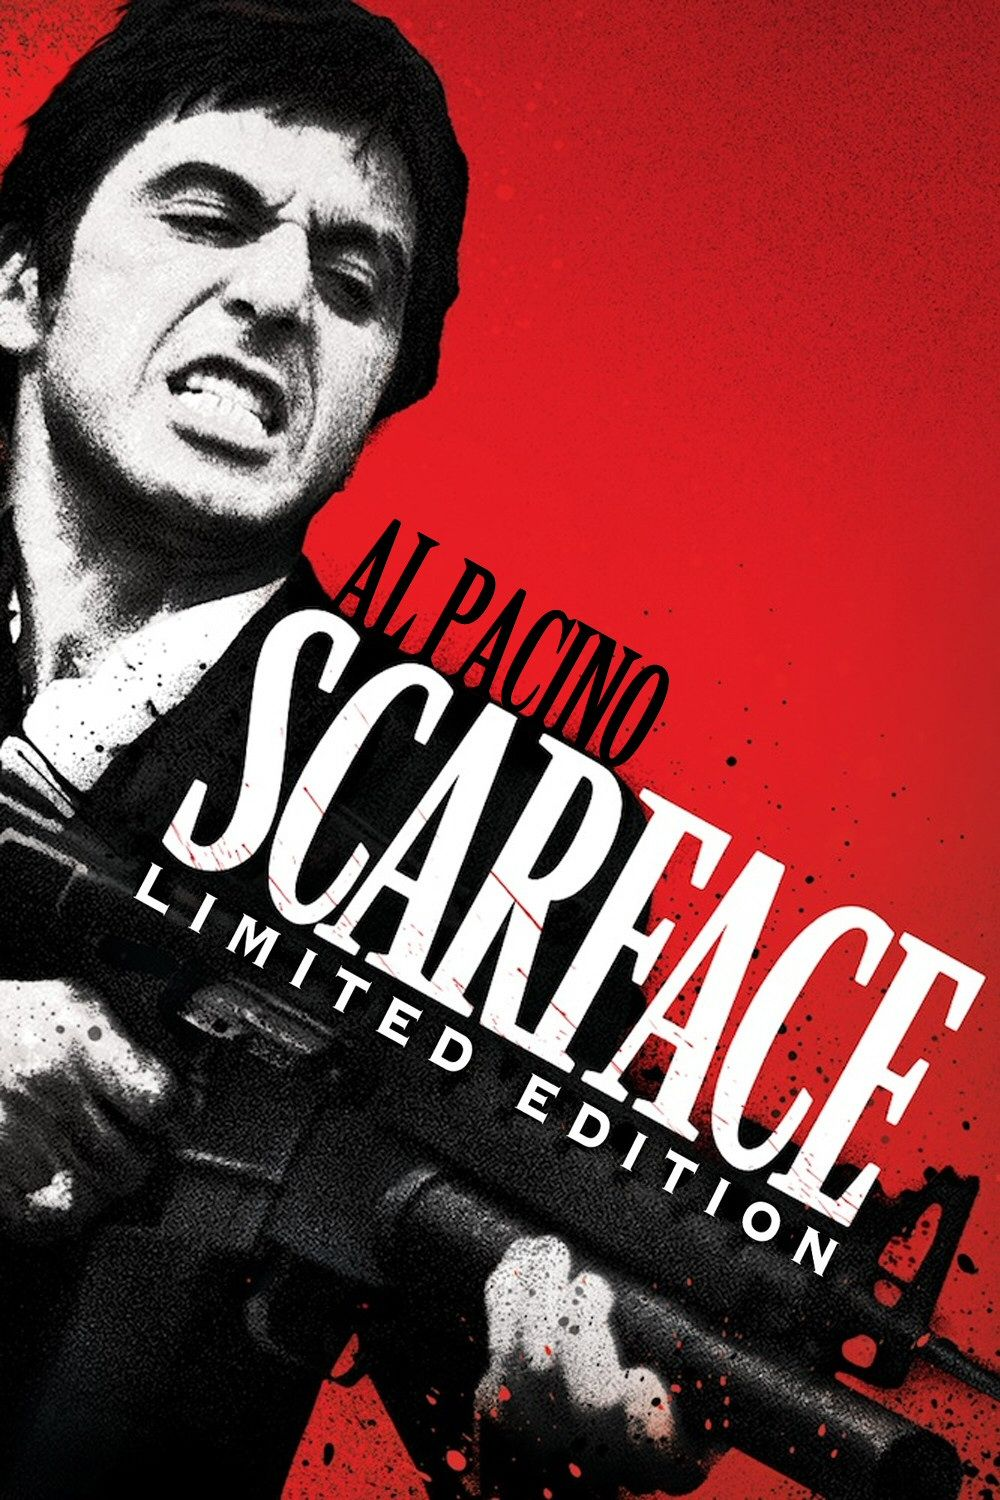 images+for+the+movie+scarface Scarfaces Wallpaper